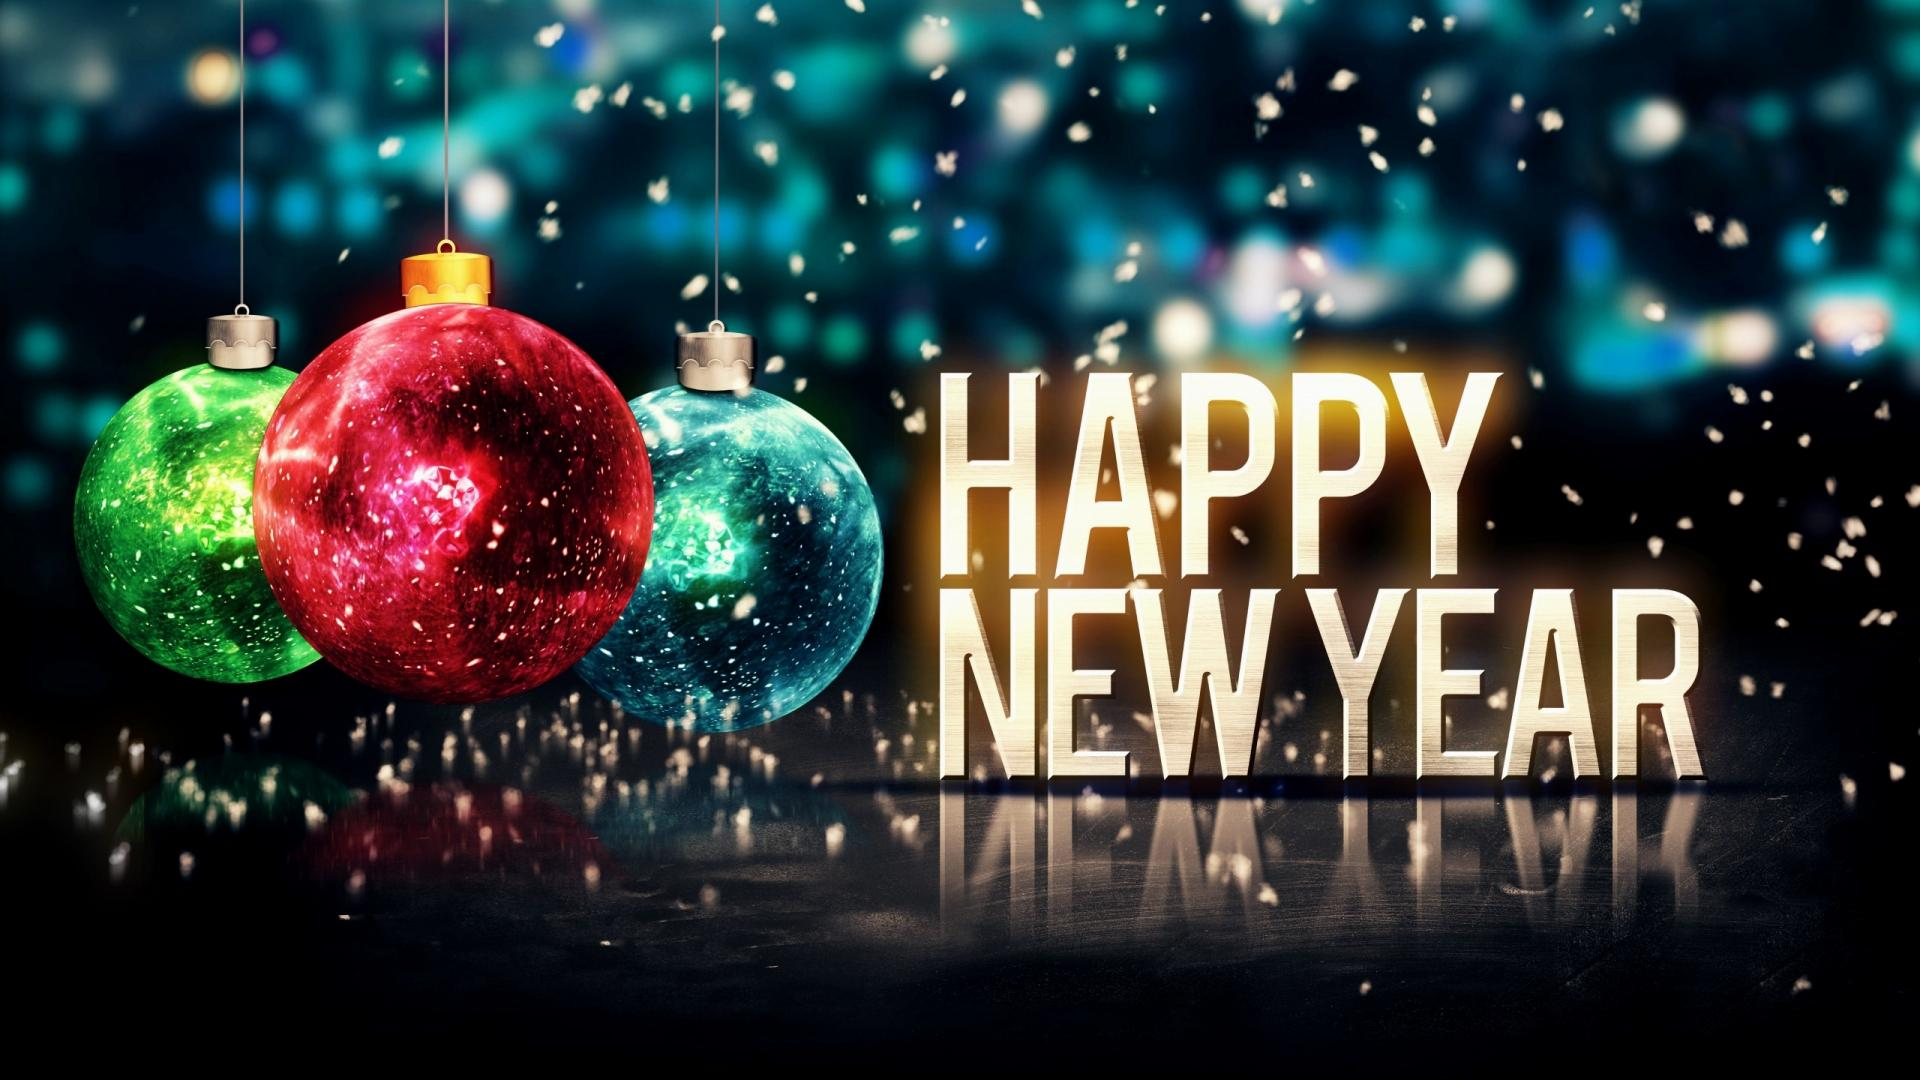 happy-new-year-2017-wallpaper-hd-wishes2